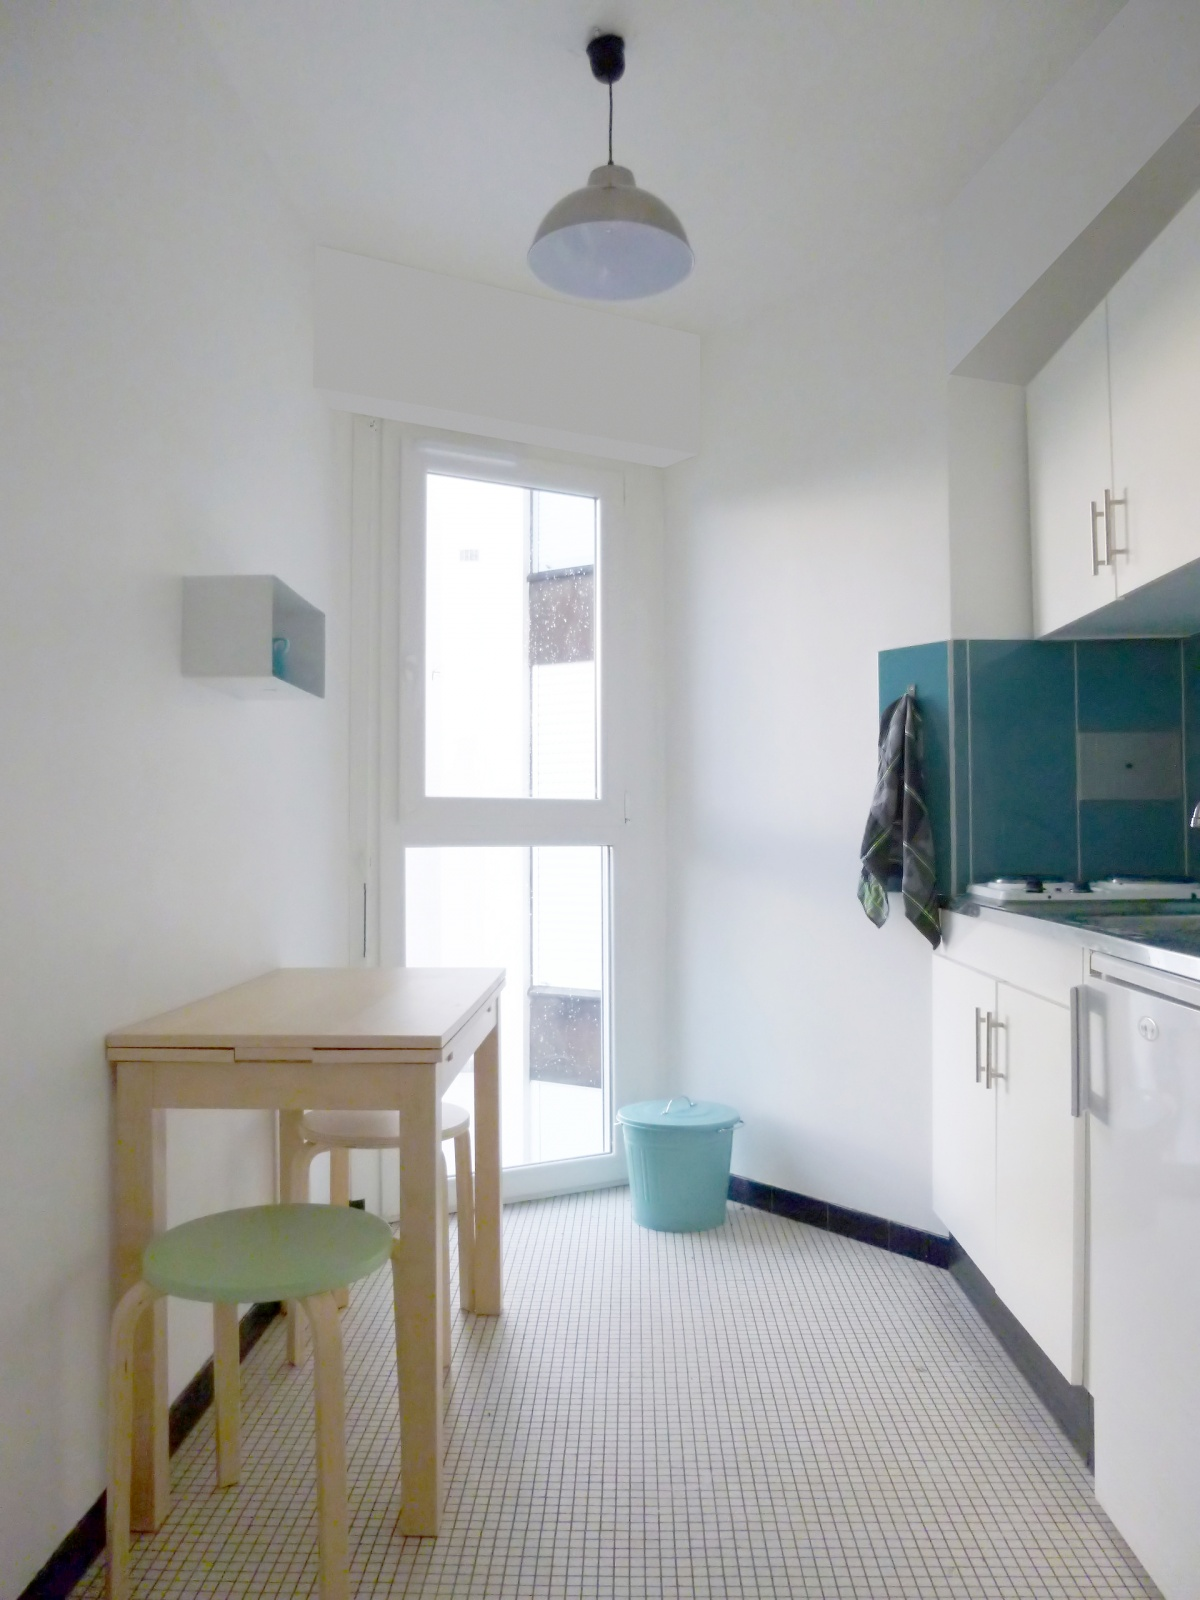 Rénovation d'un appartement étudiant